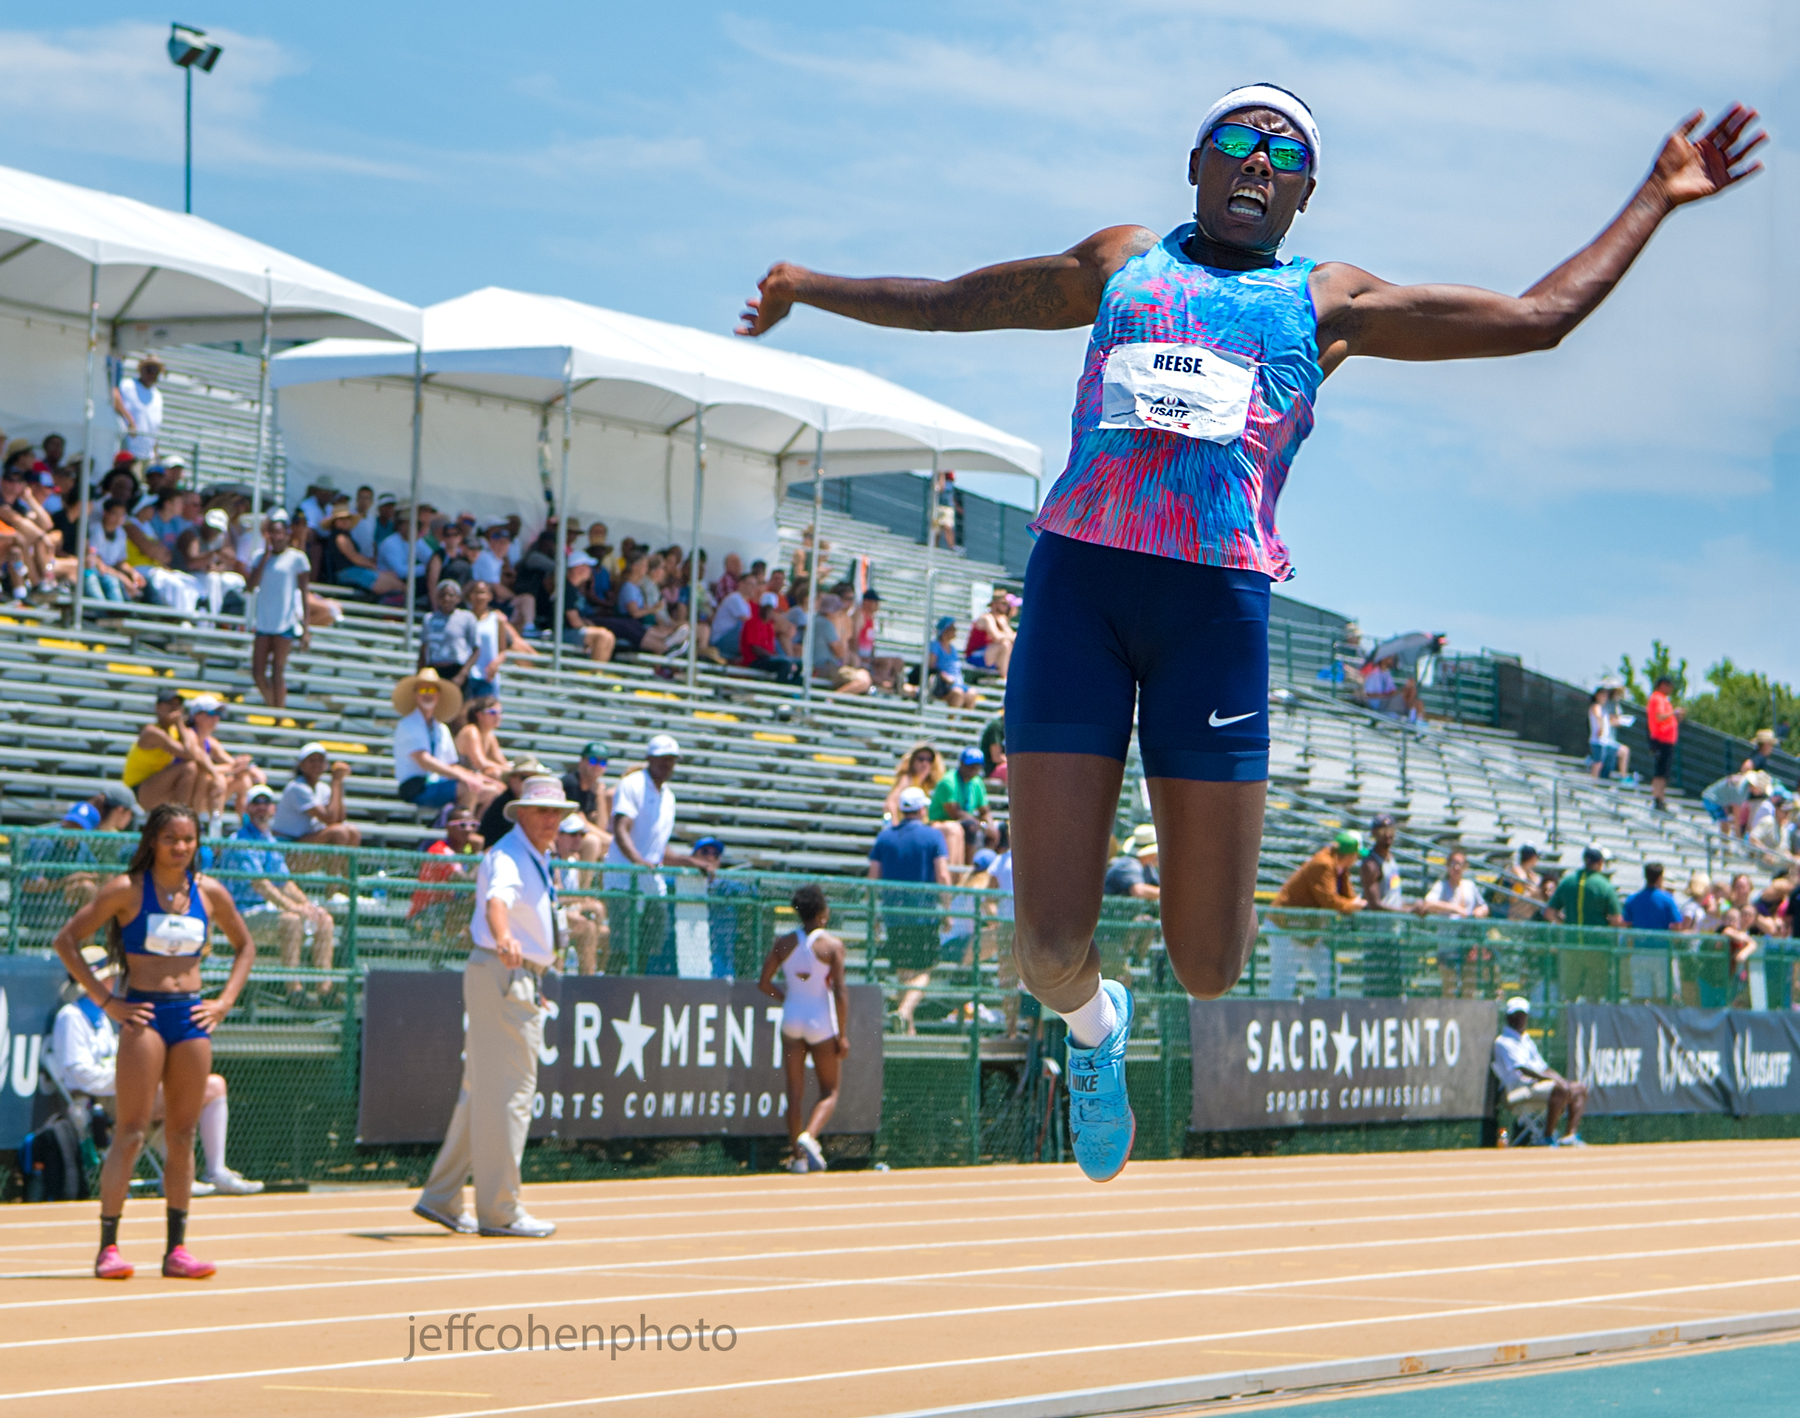 2017-usatf-outdoor-champs-day-3-reese-ljw-davis-watching-jeff-cohen-photo--703-web.jpg